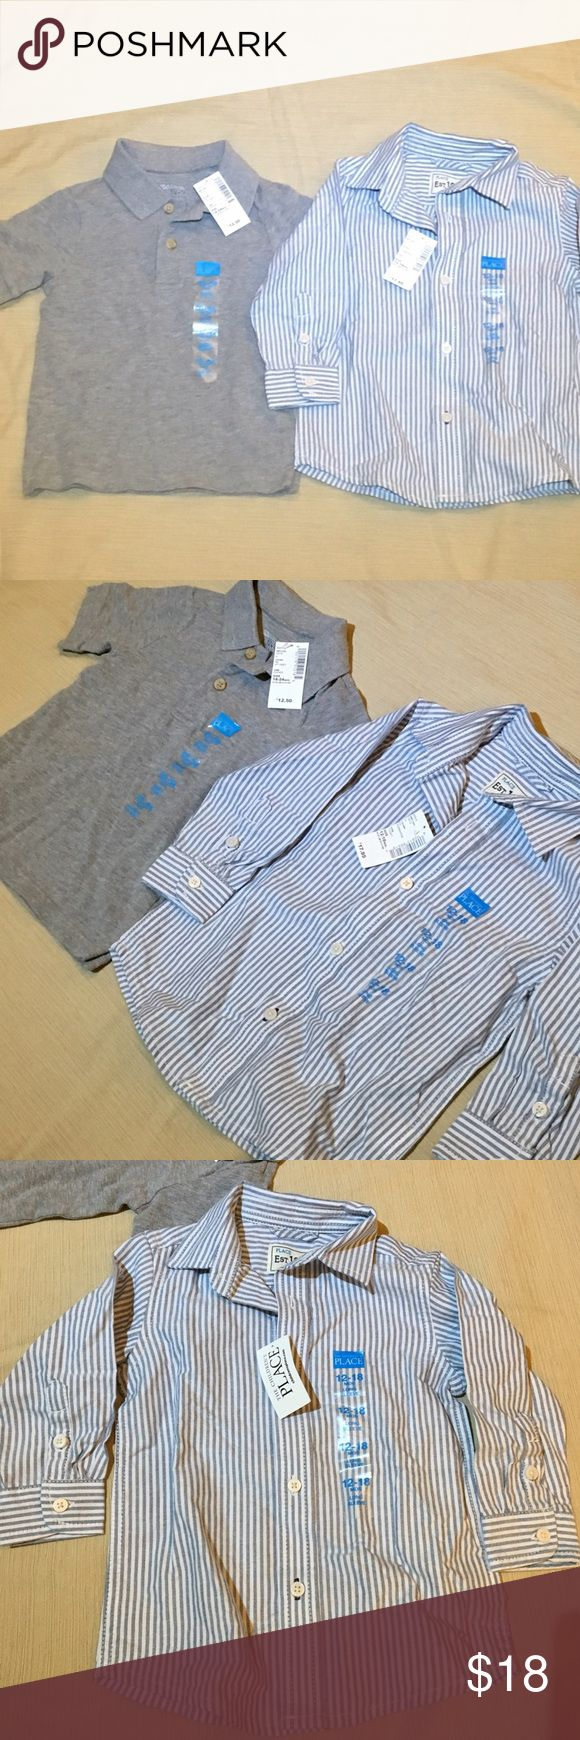 NWT children's place polo tee shirt & button down 2 NWT classy classic shirts perfect for ur little one. a gray polo with some stretch in size 18-24 months and a blue- green striped button down in size 12- 18 months. The button down seems to run a bit big. Children's Place Shirts & Tops Polos